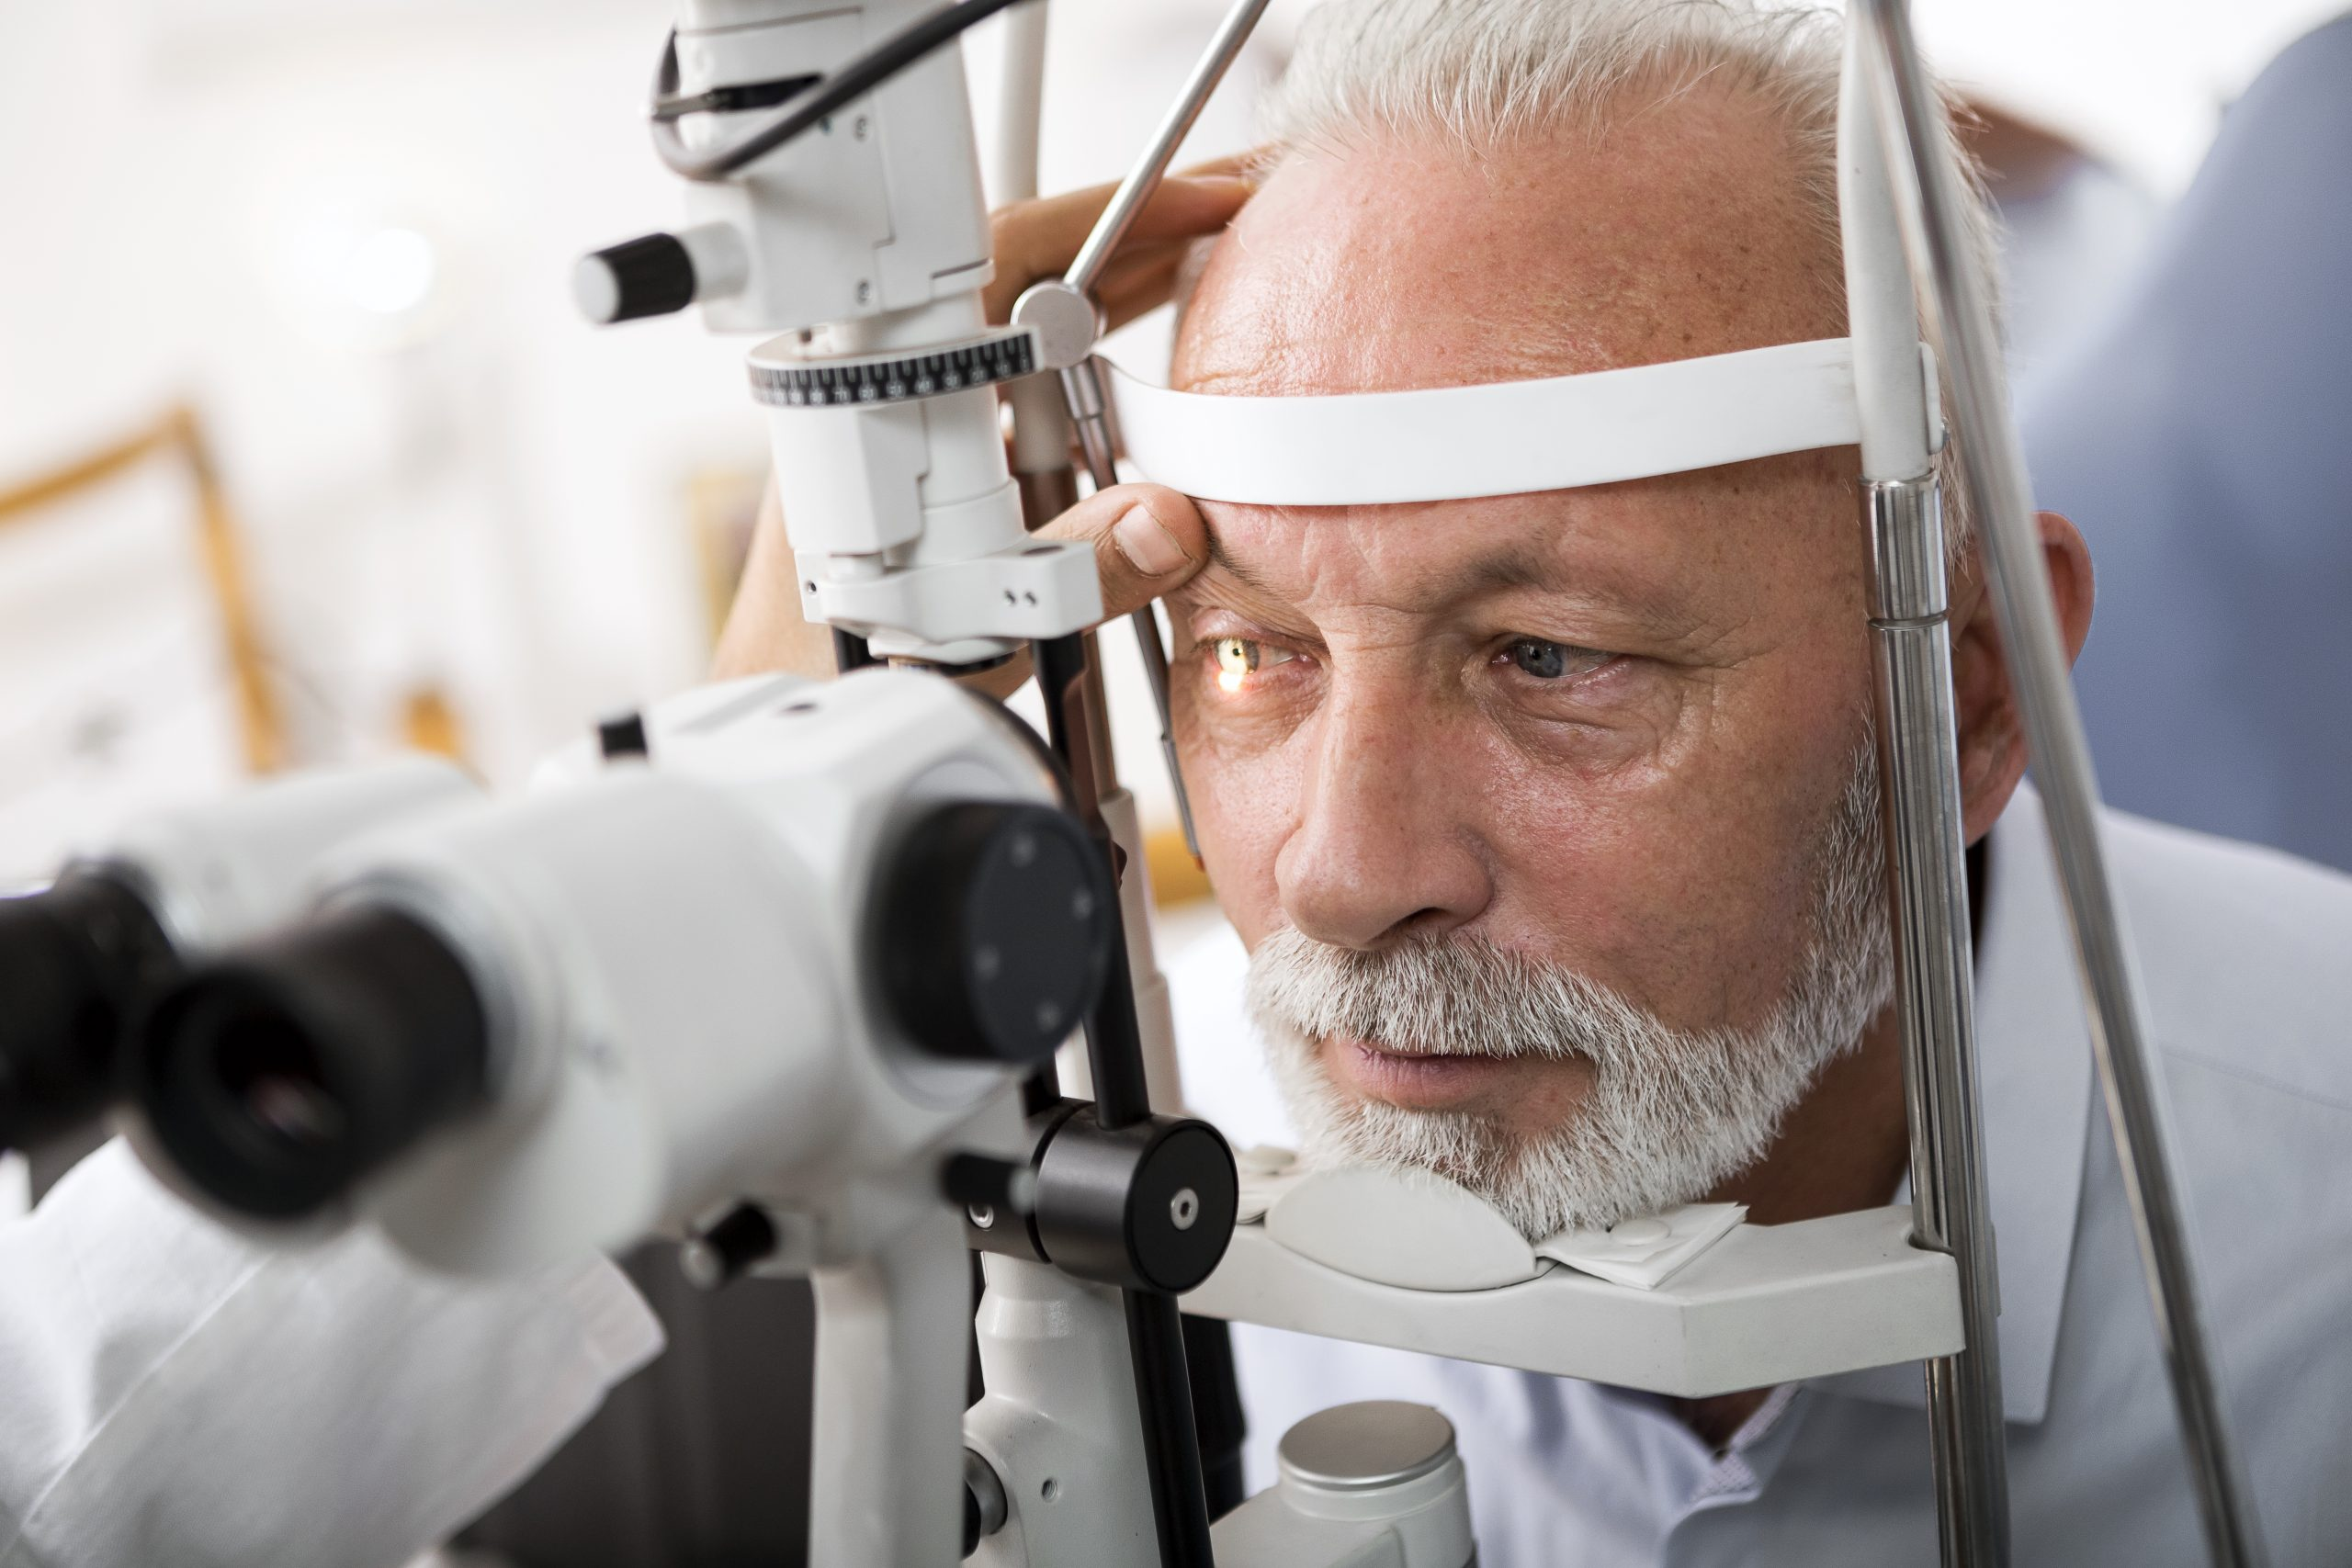 Cataract Surgery and Microstent Effectively Treat Glaucoma